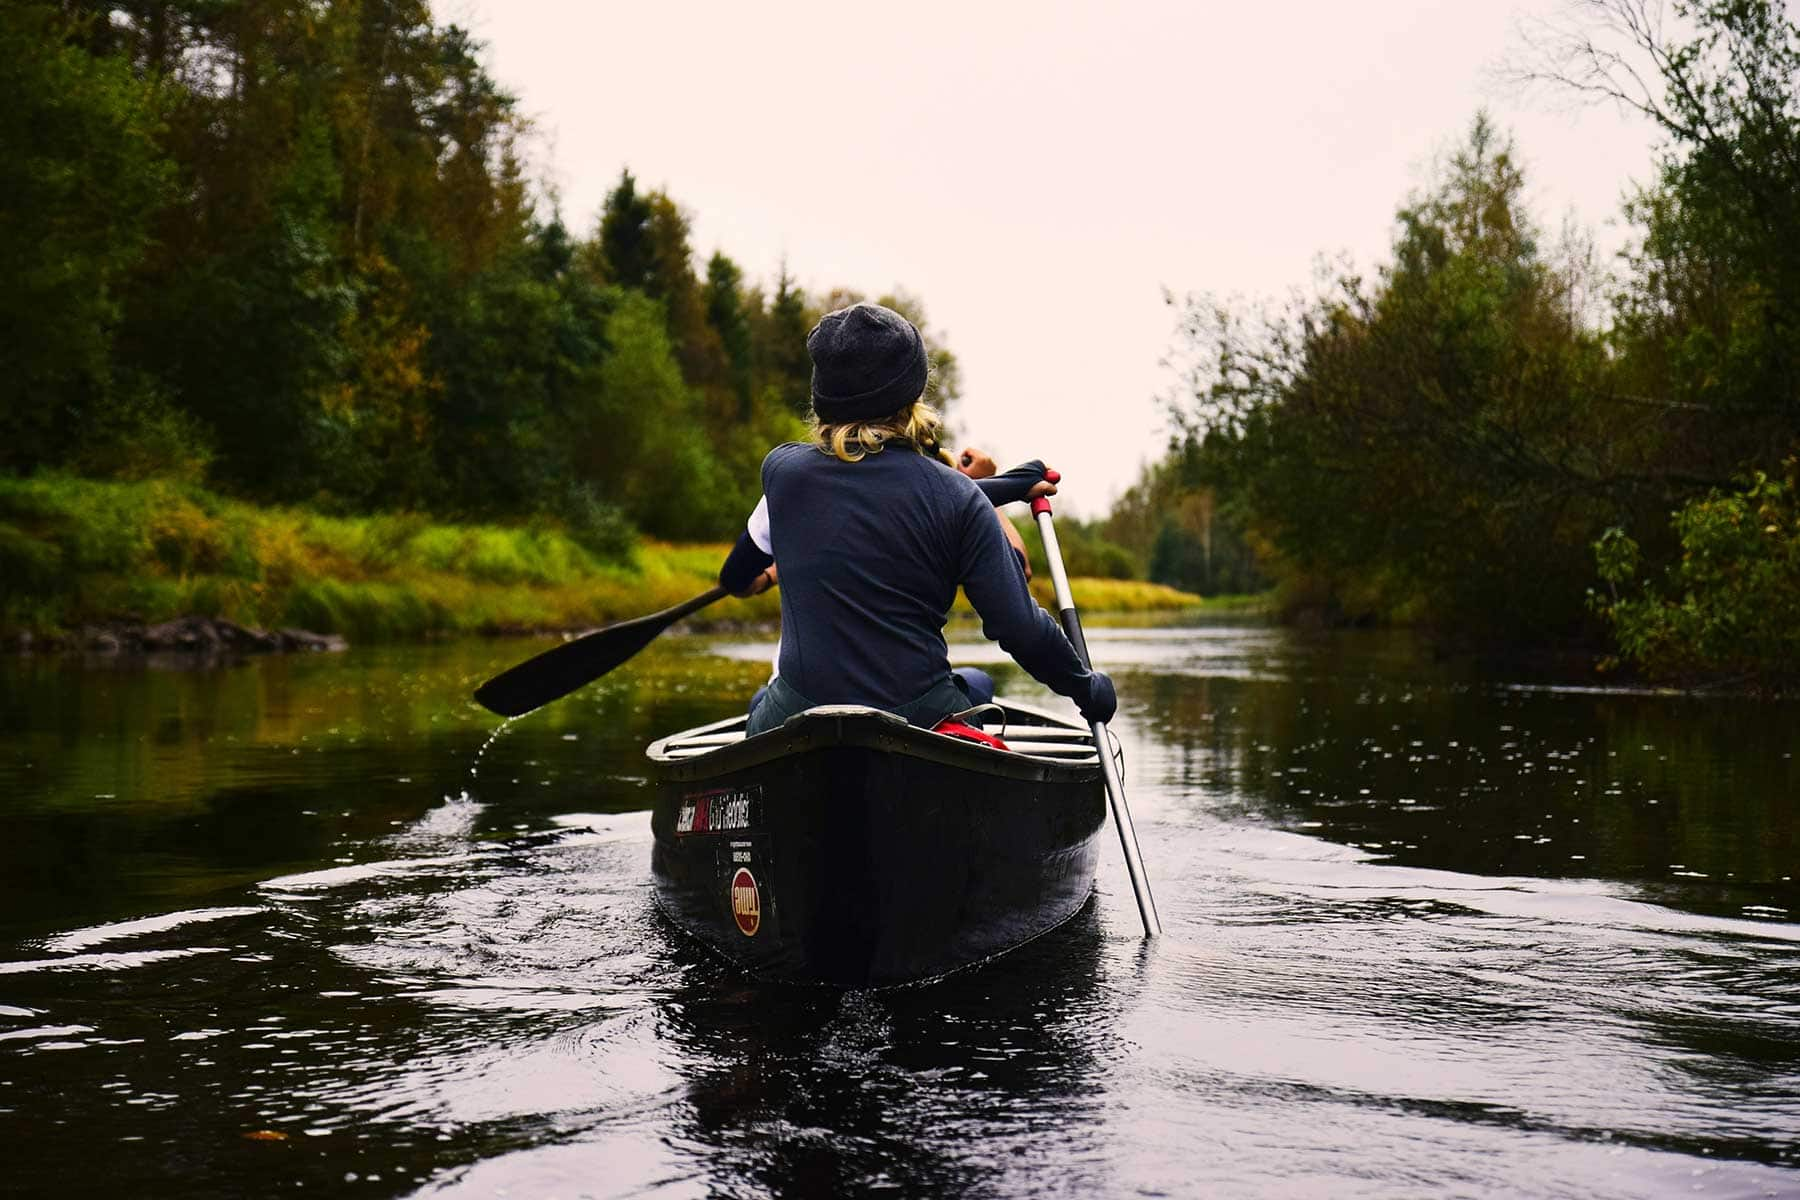 Discover-Sweden-by-train-Nygren-Lind-Travel-agency---kayak